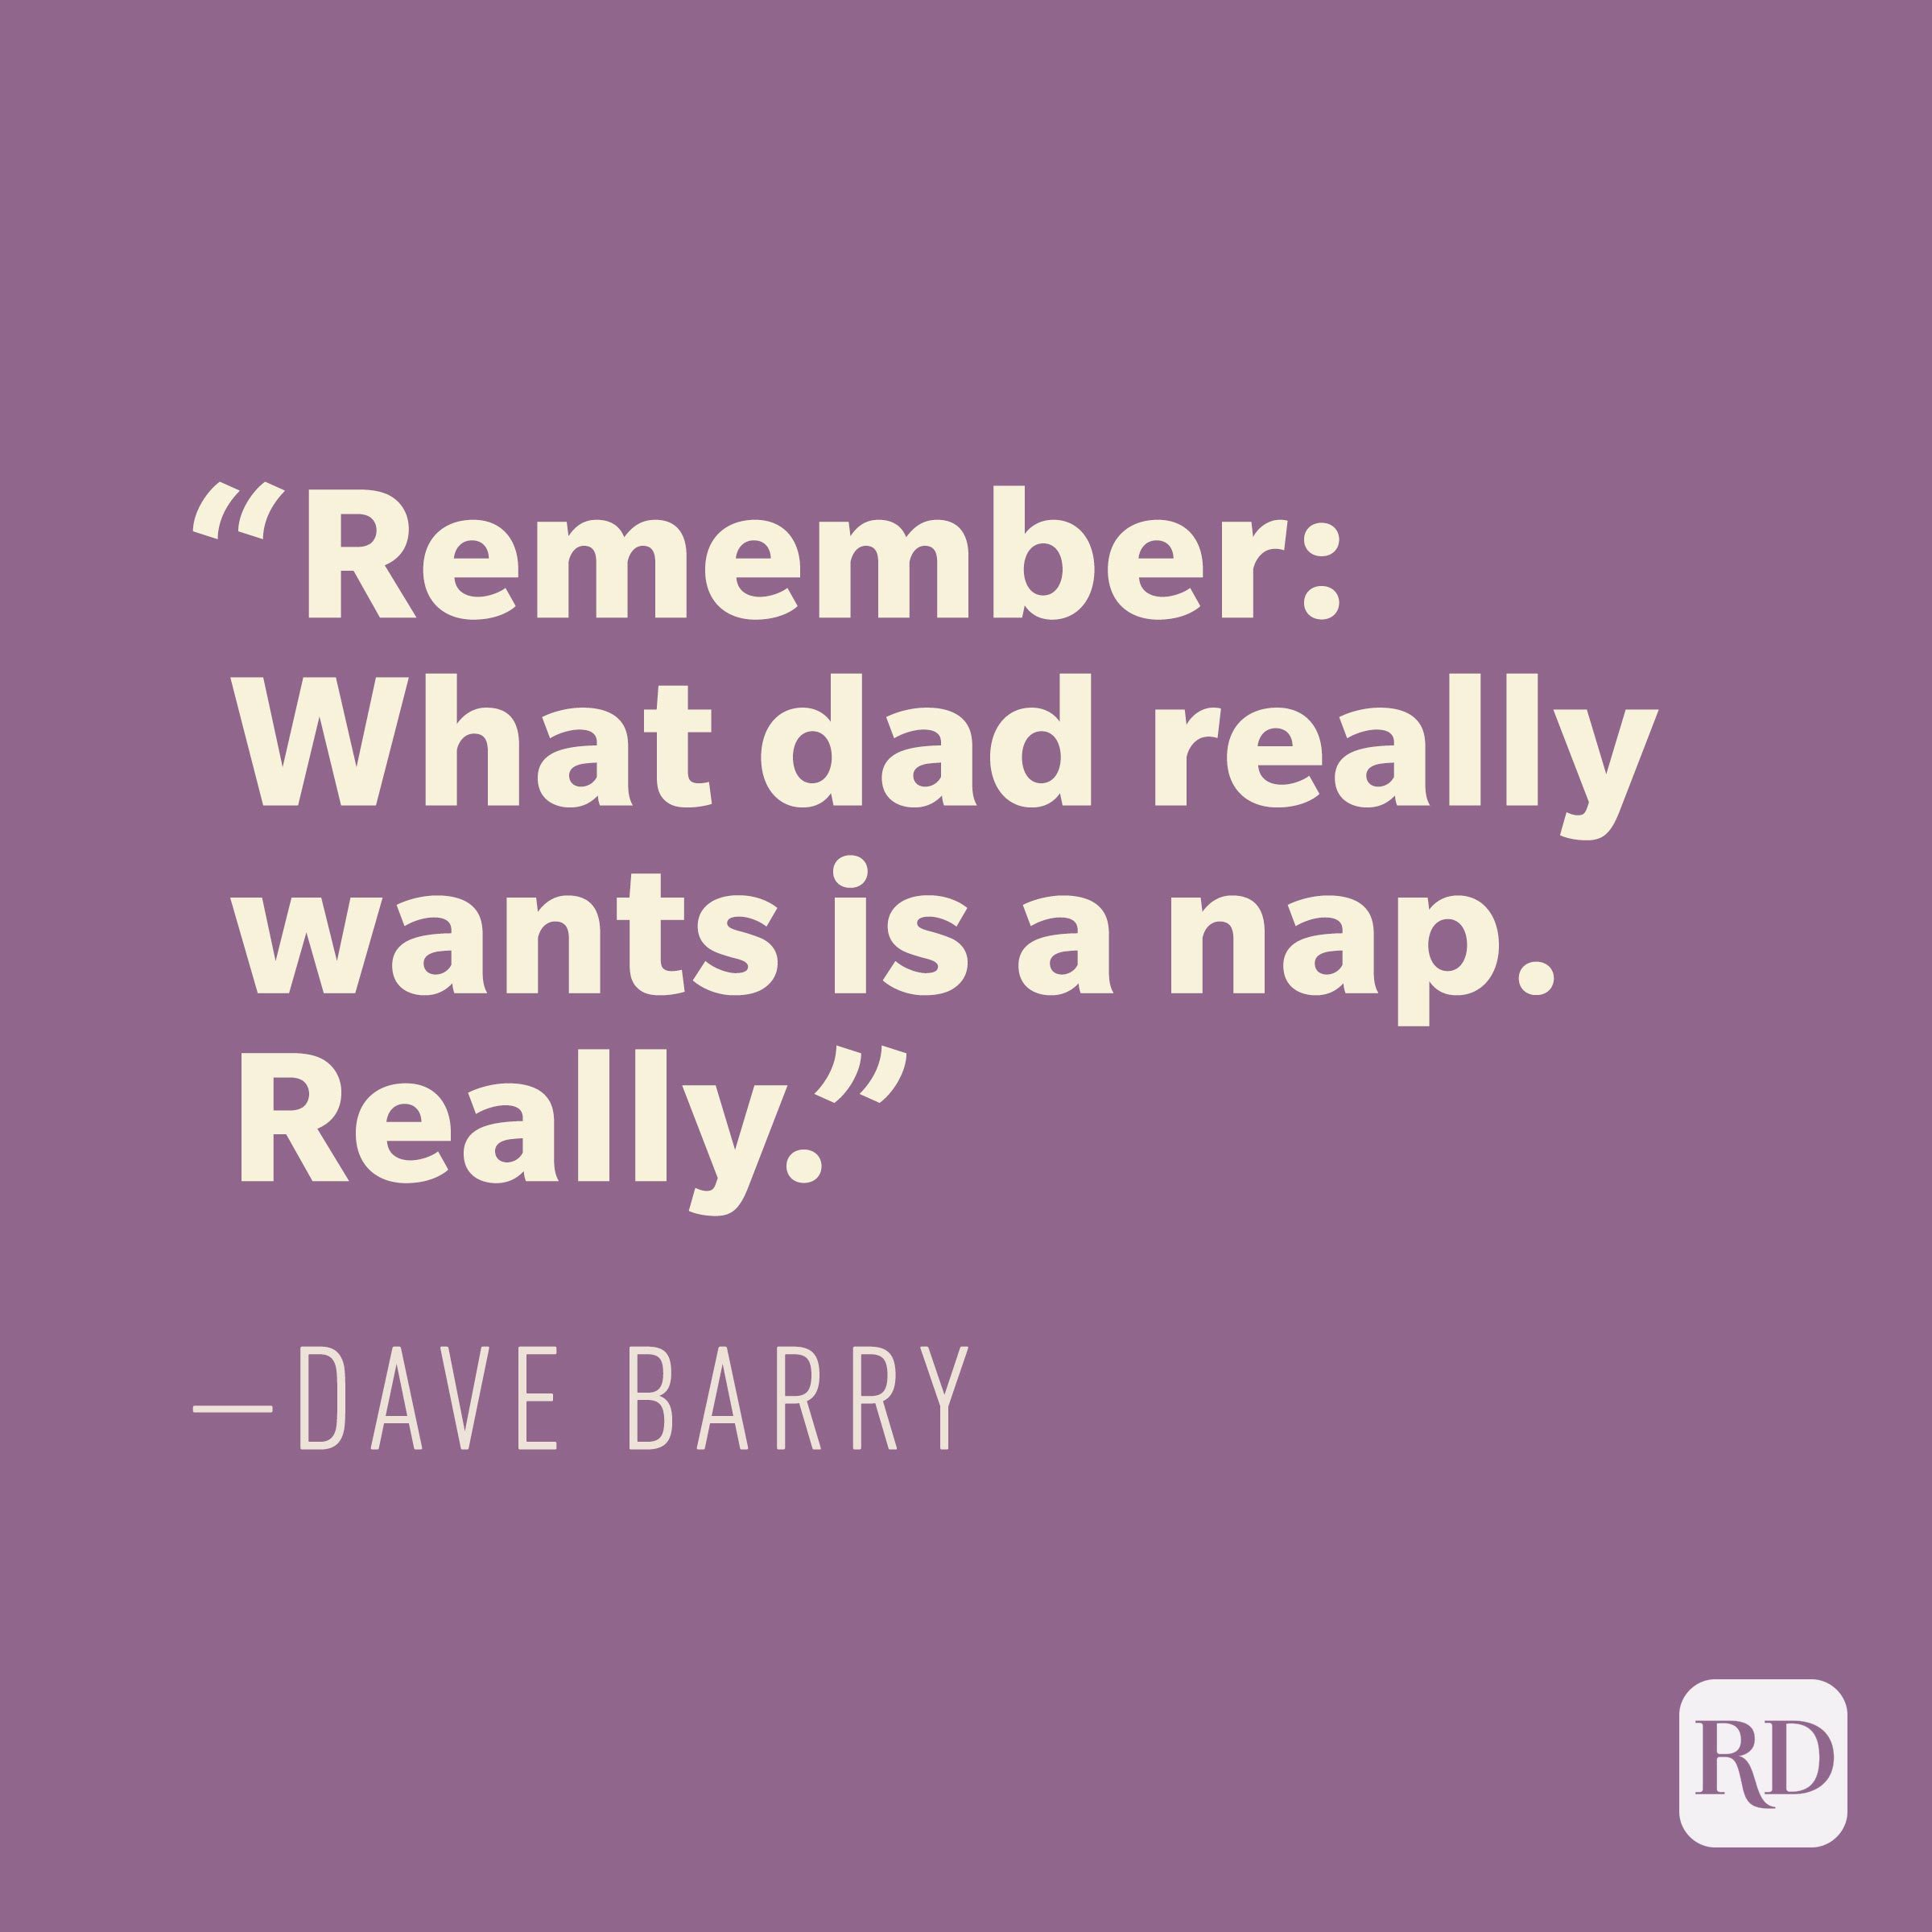 """Remember: What dad really wants is a nap. Really."" —DAVE BARRY"